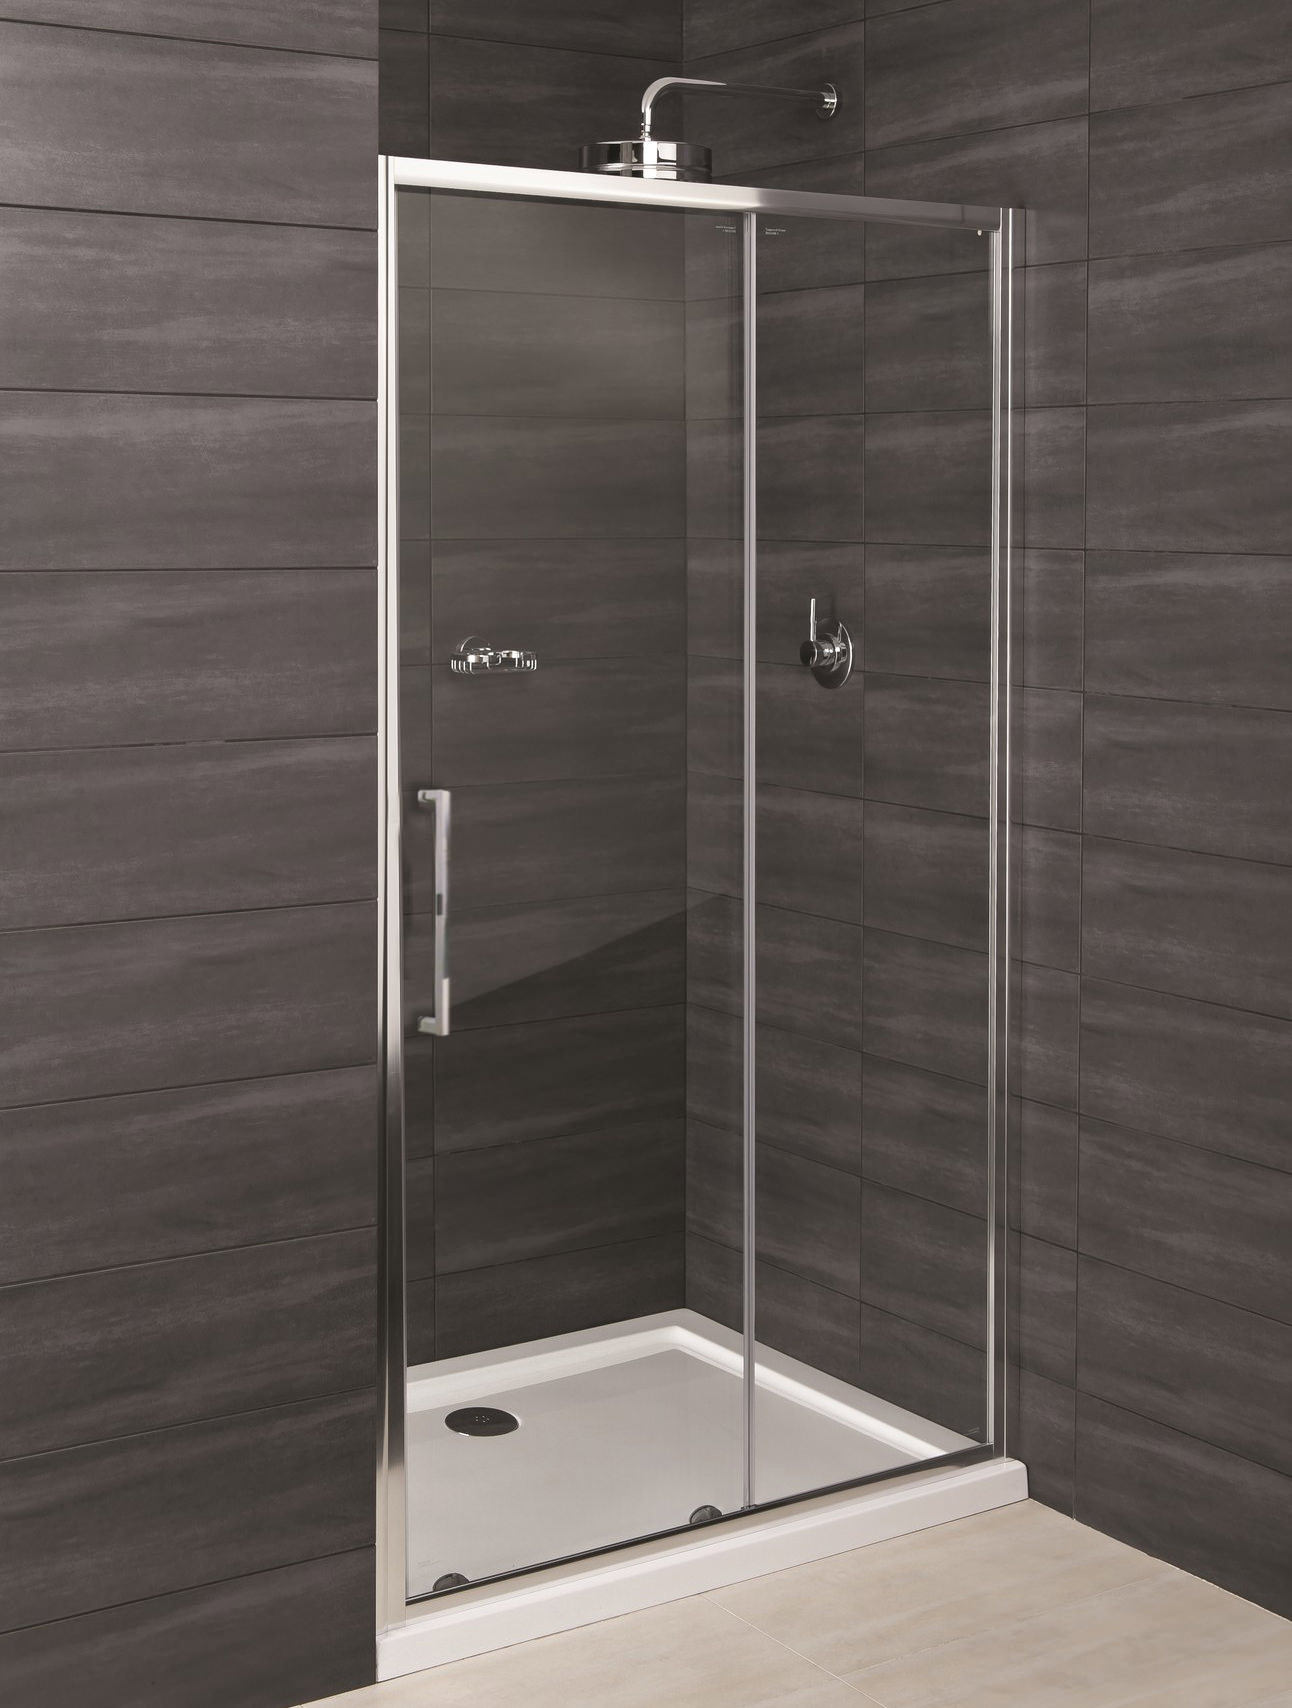 images How to Clean Shower Doors